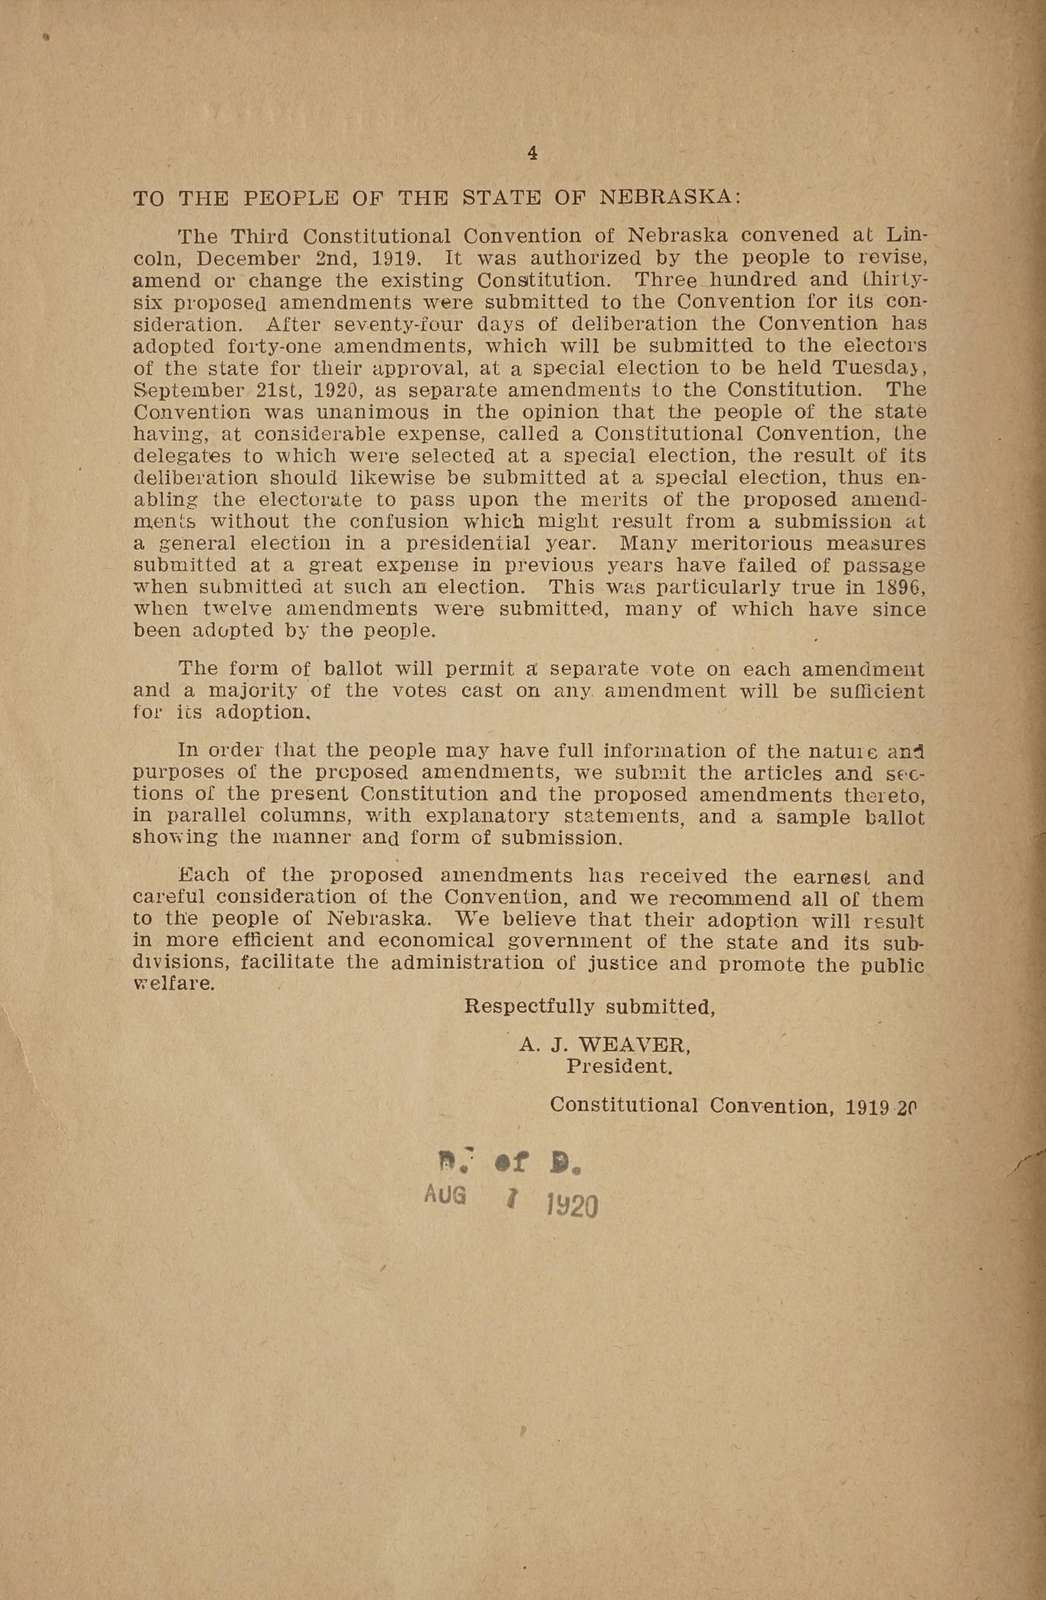 Proposed amendments to the constitution of the state of Nebraska as adopted by the Constitutional convention 1919-20, with explanatory statements and sample ballot